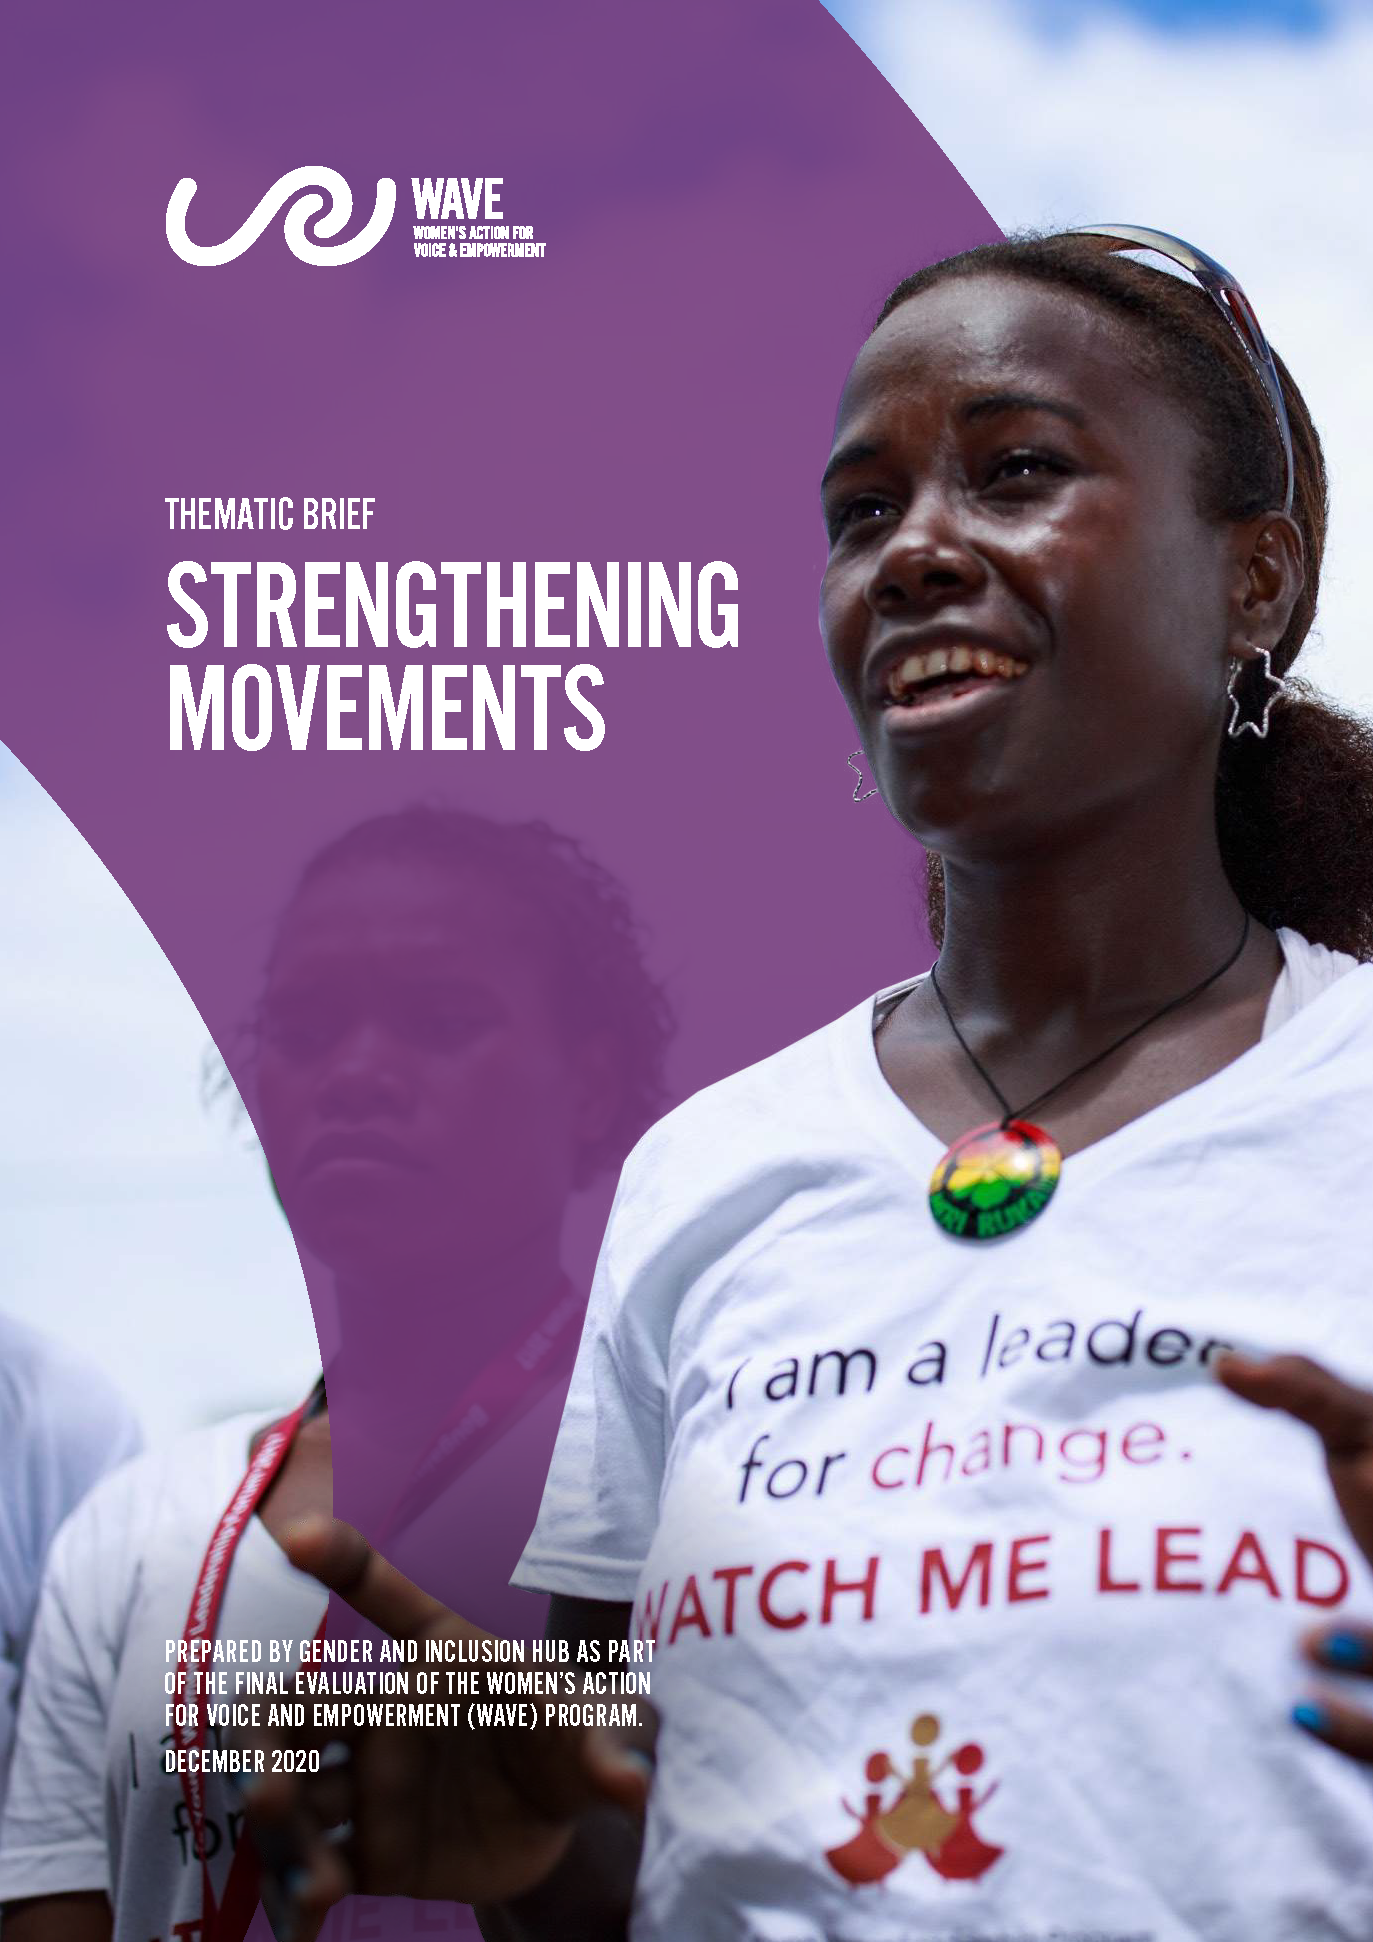 Photo of a woman wearing a shirt that says ' I am a leader for change'